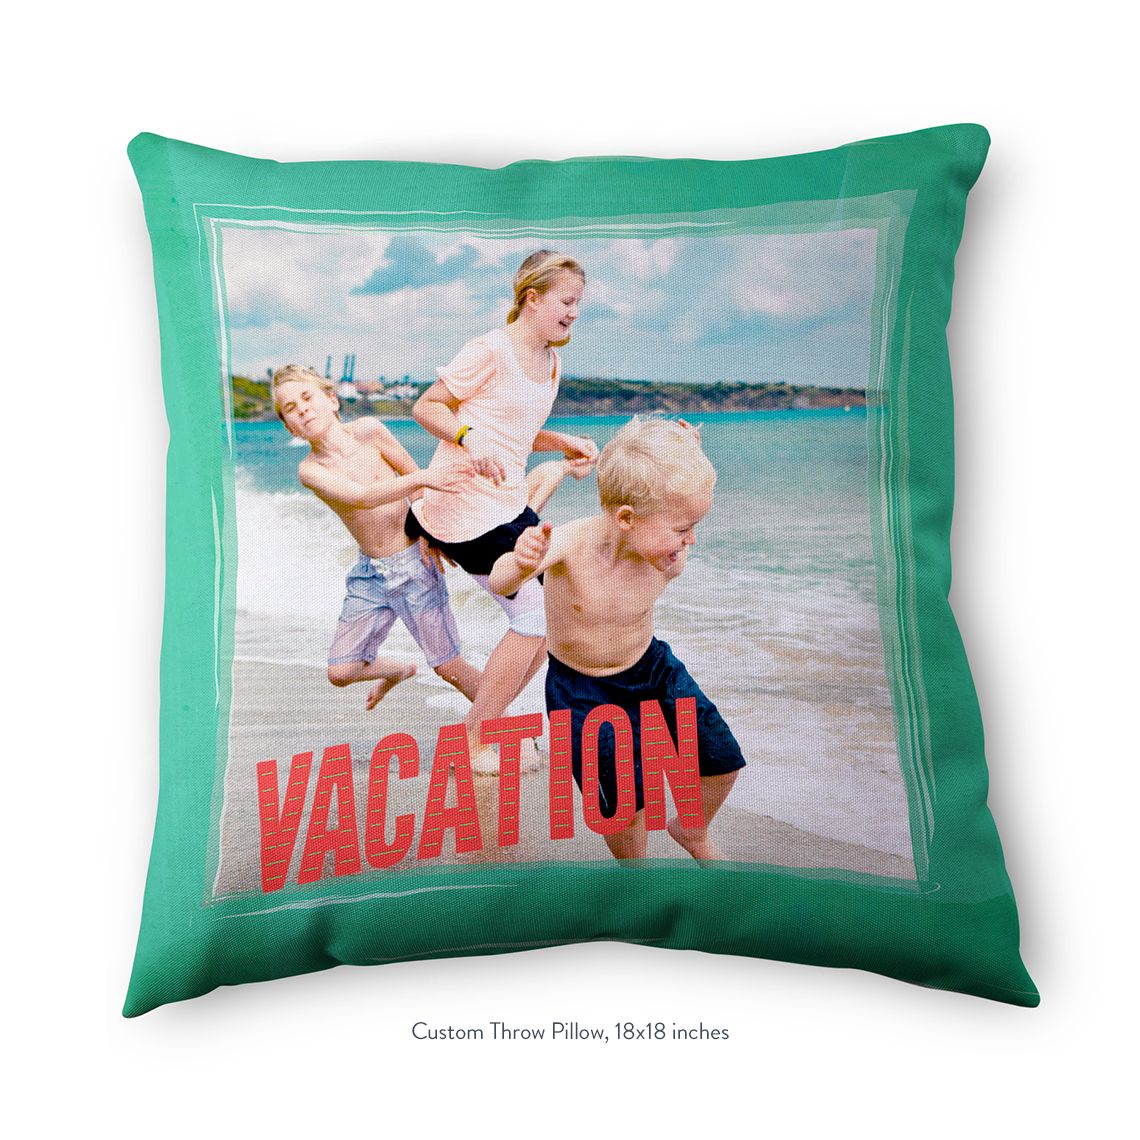 custom throw pillow - Toss Pillows